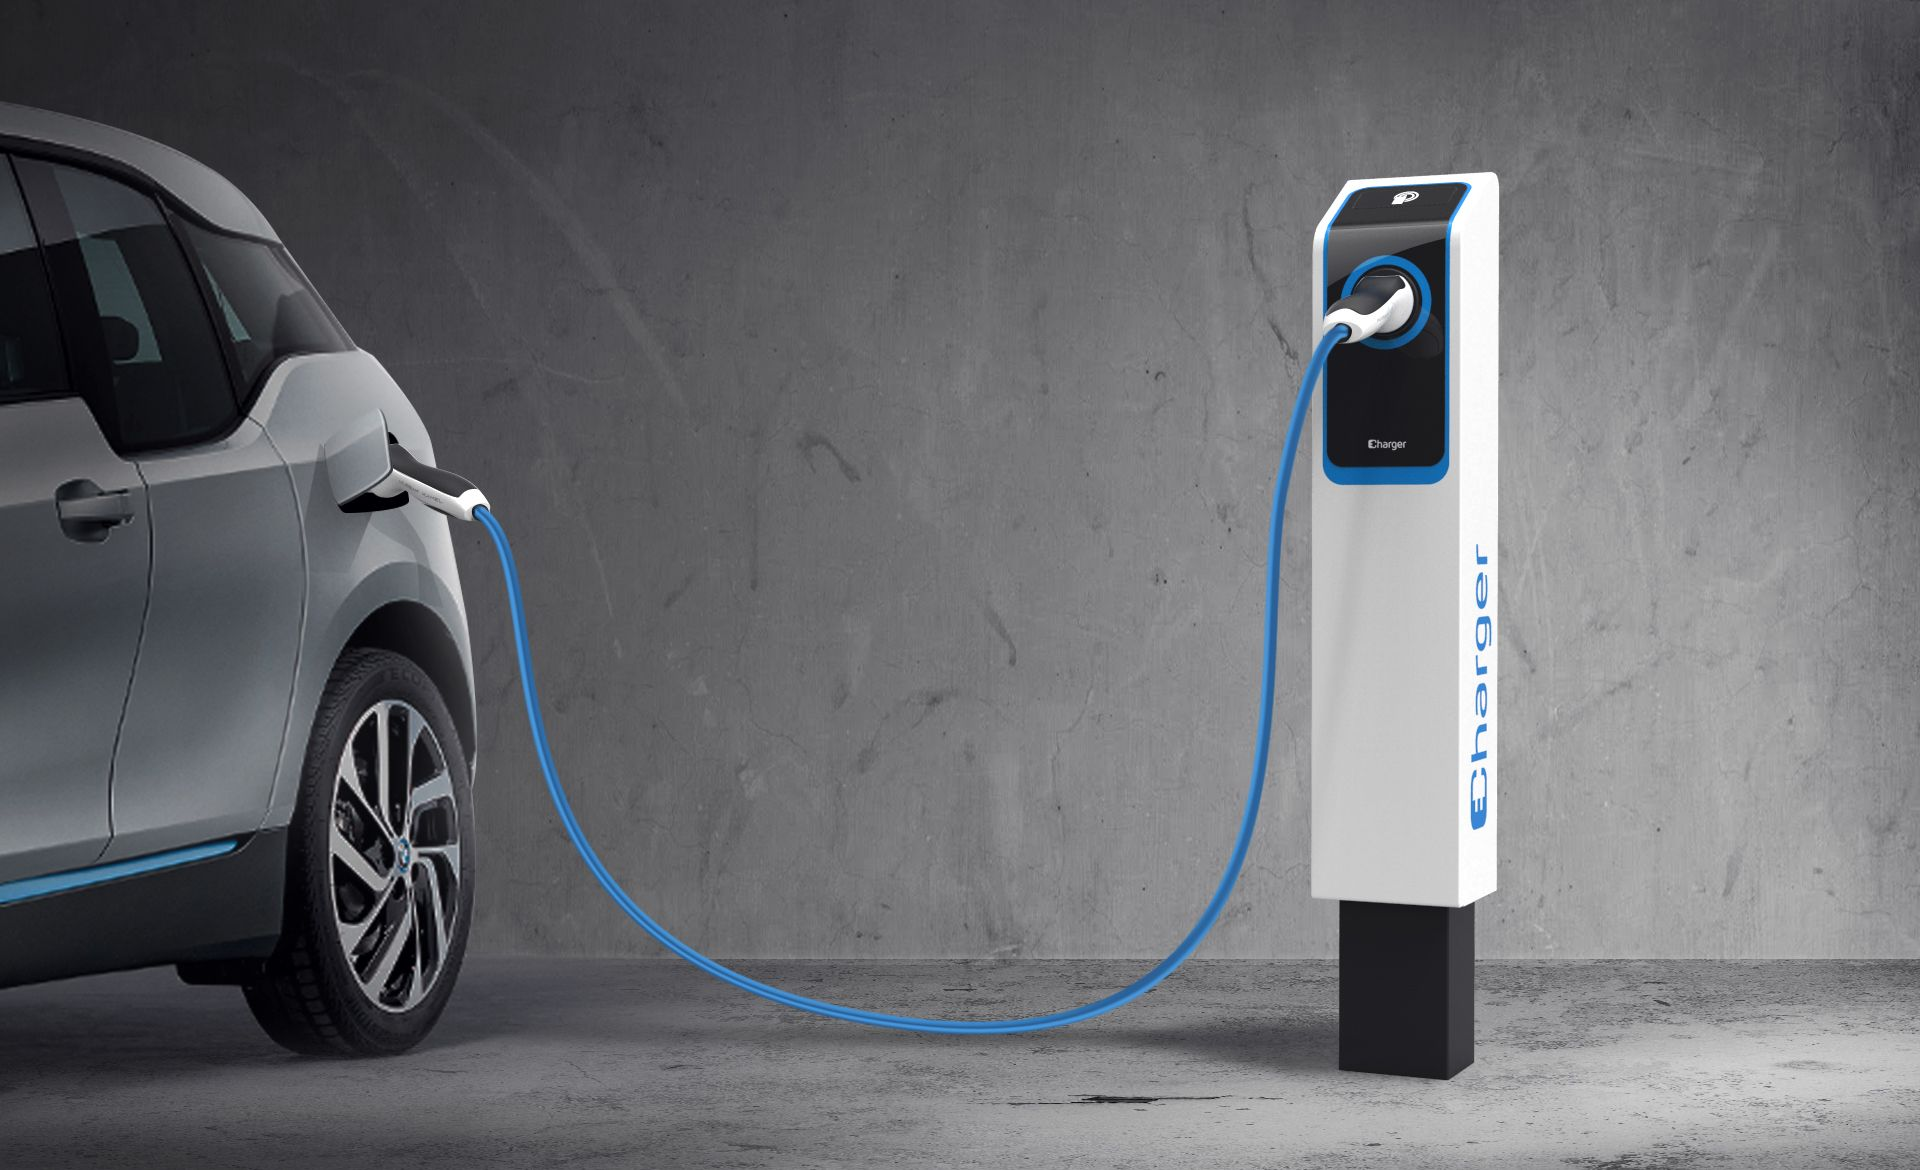 Echarger On Behance Electric Car Charger